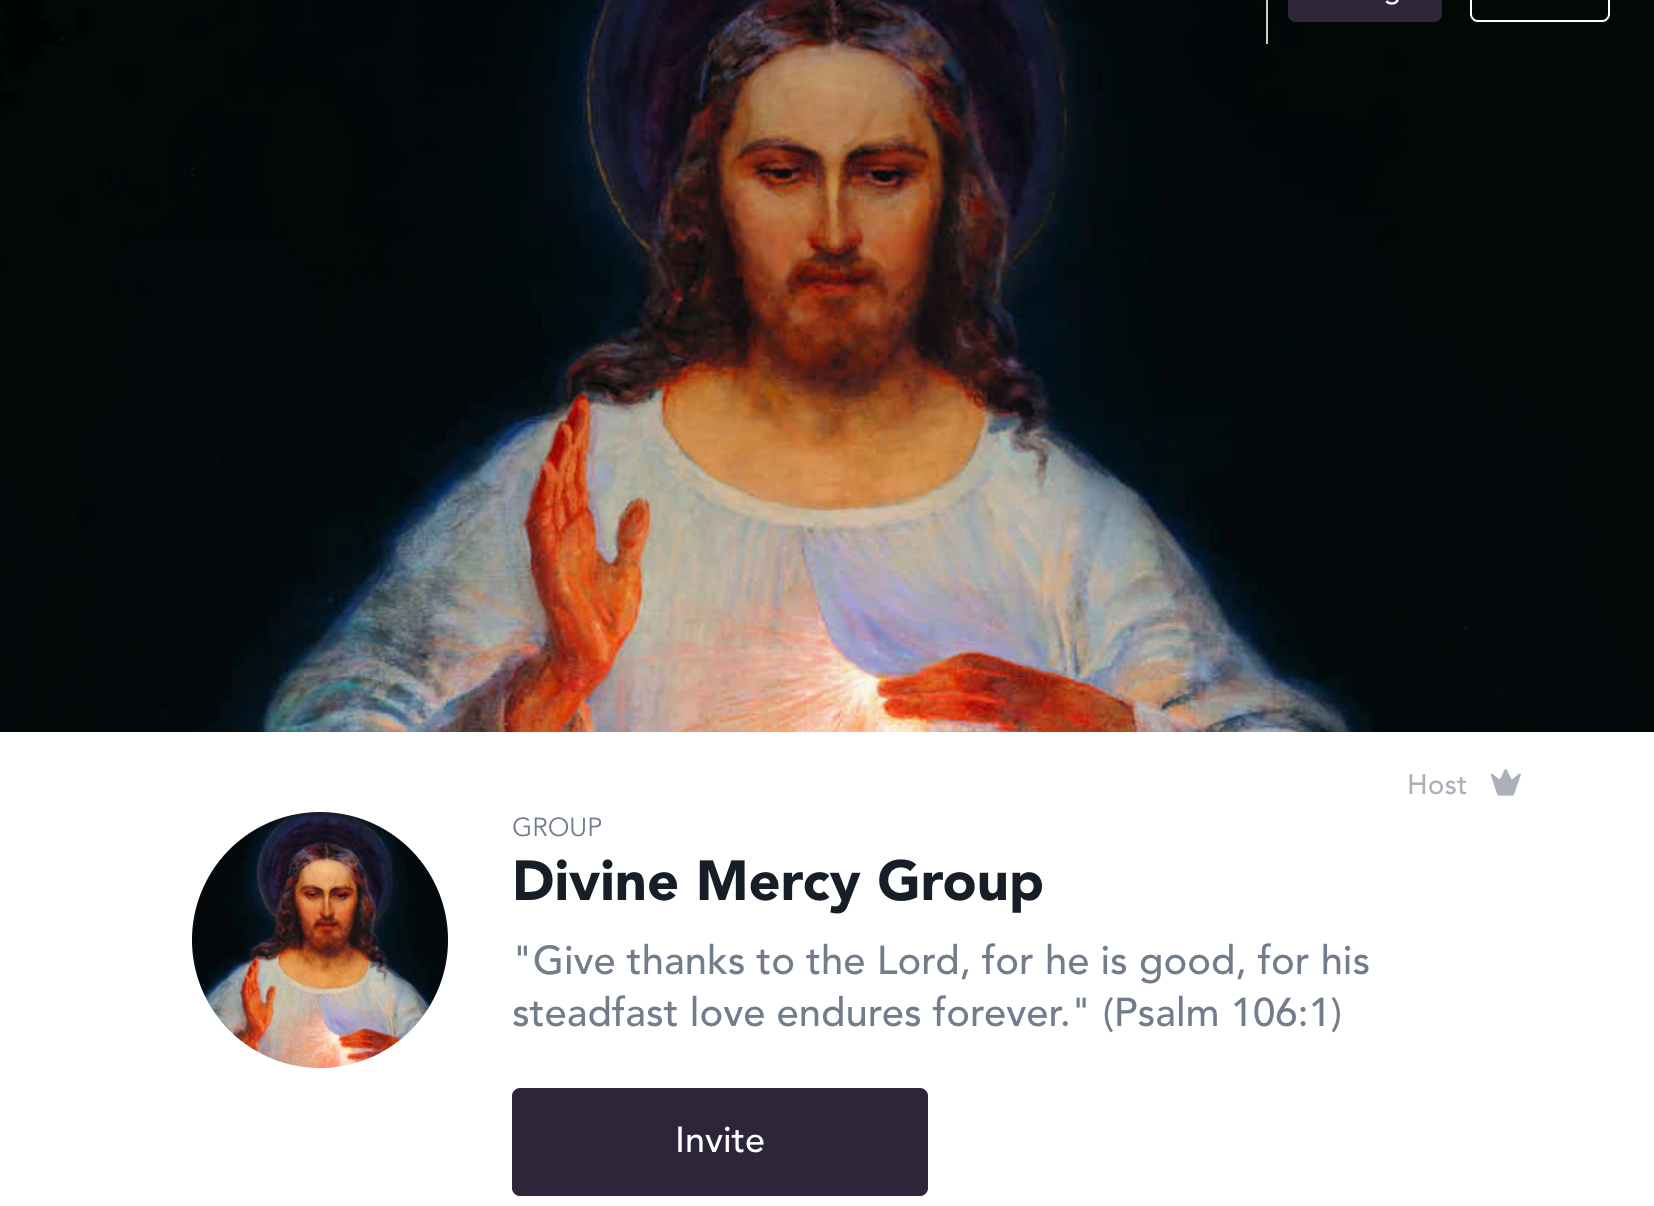 Divine Mercy Group